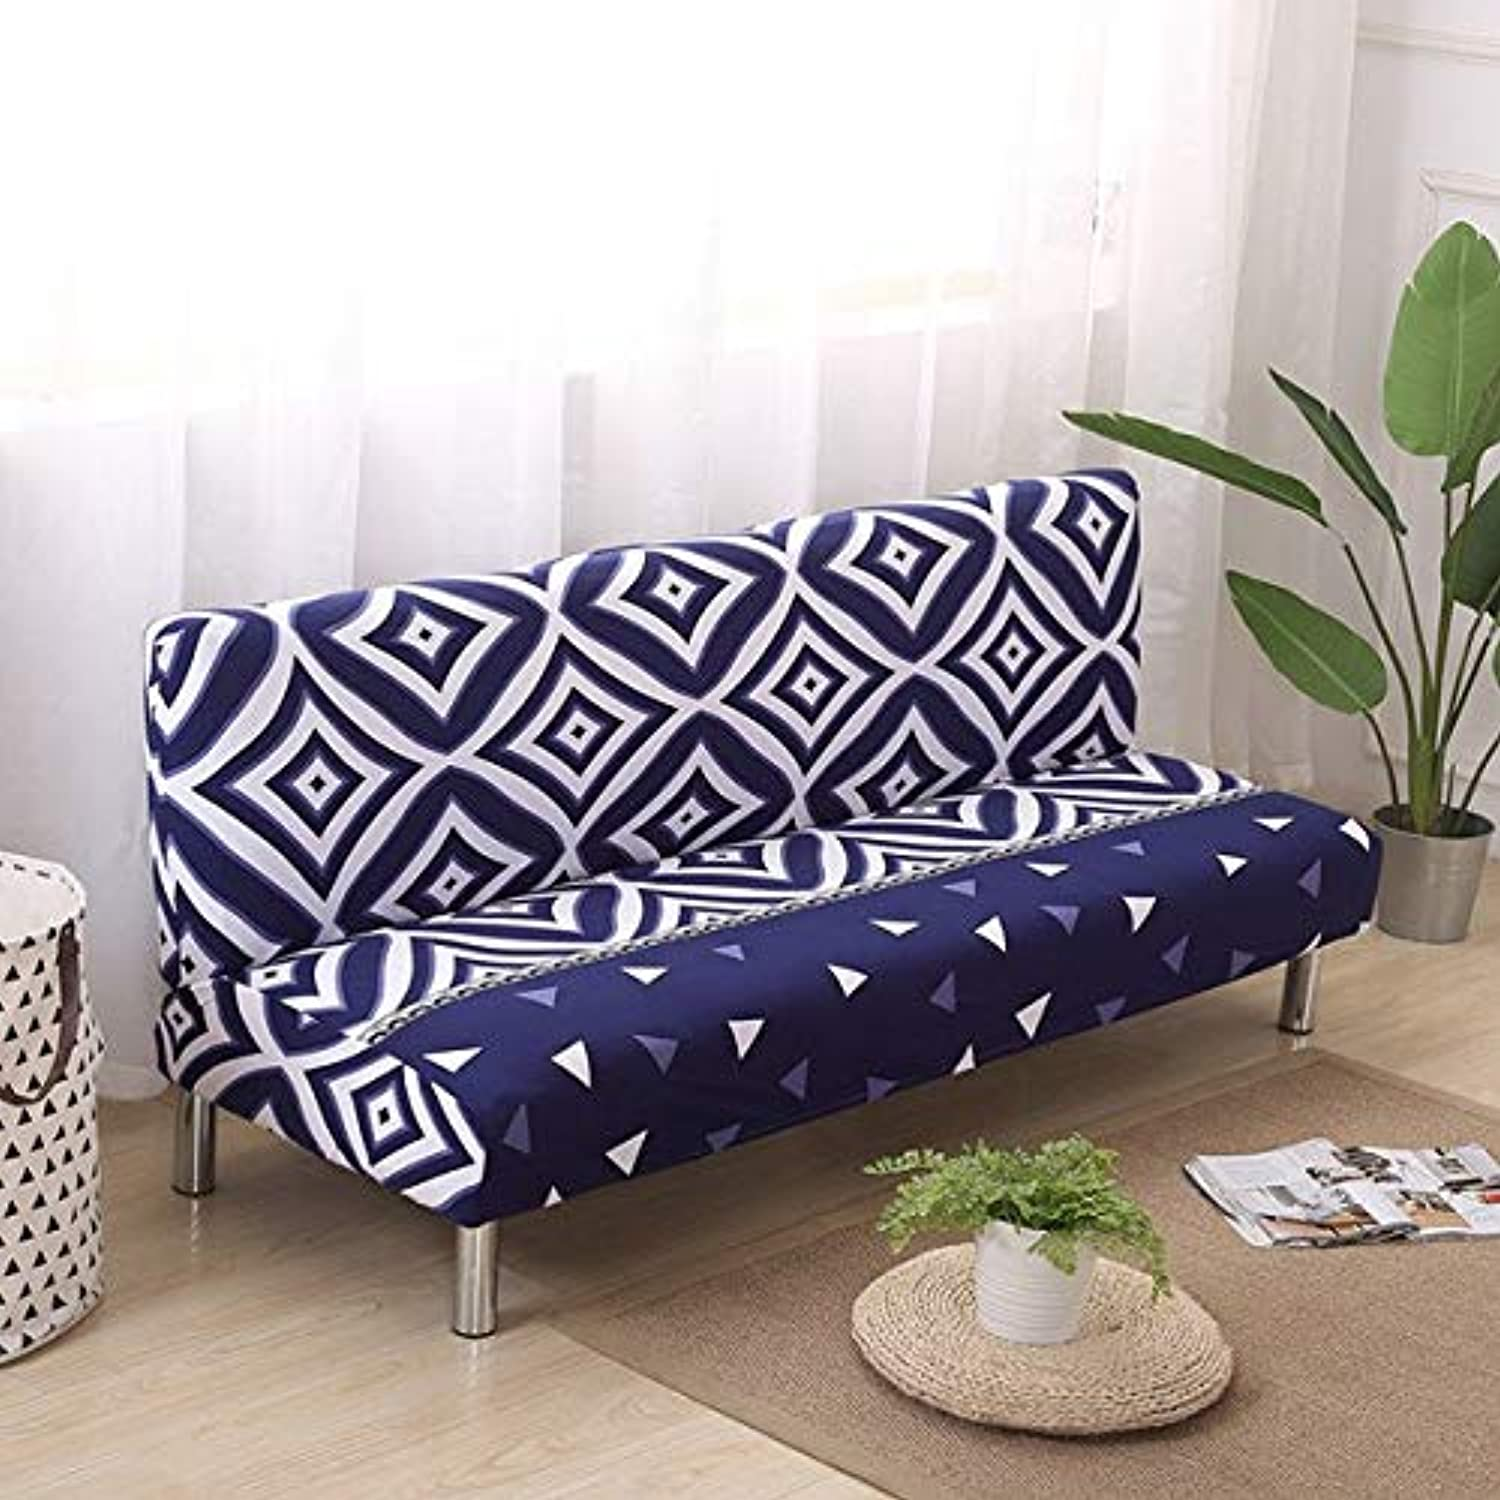 Leaves Pastoral Printing Sofa Cover Slip-Resistant Sectional Elastic Full Sofa Towel for Living Room 1 2 3 4-seater   color 19, 3seater 190-230cm